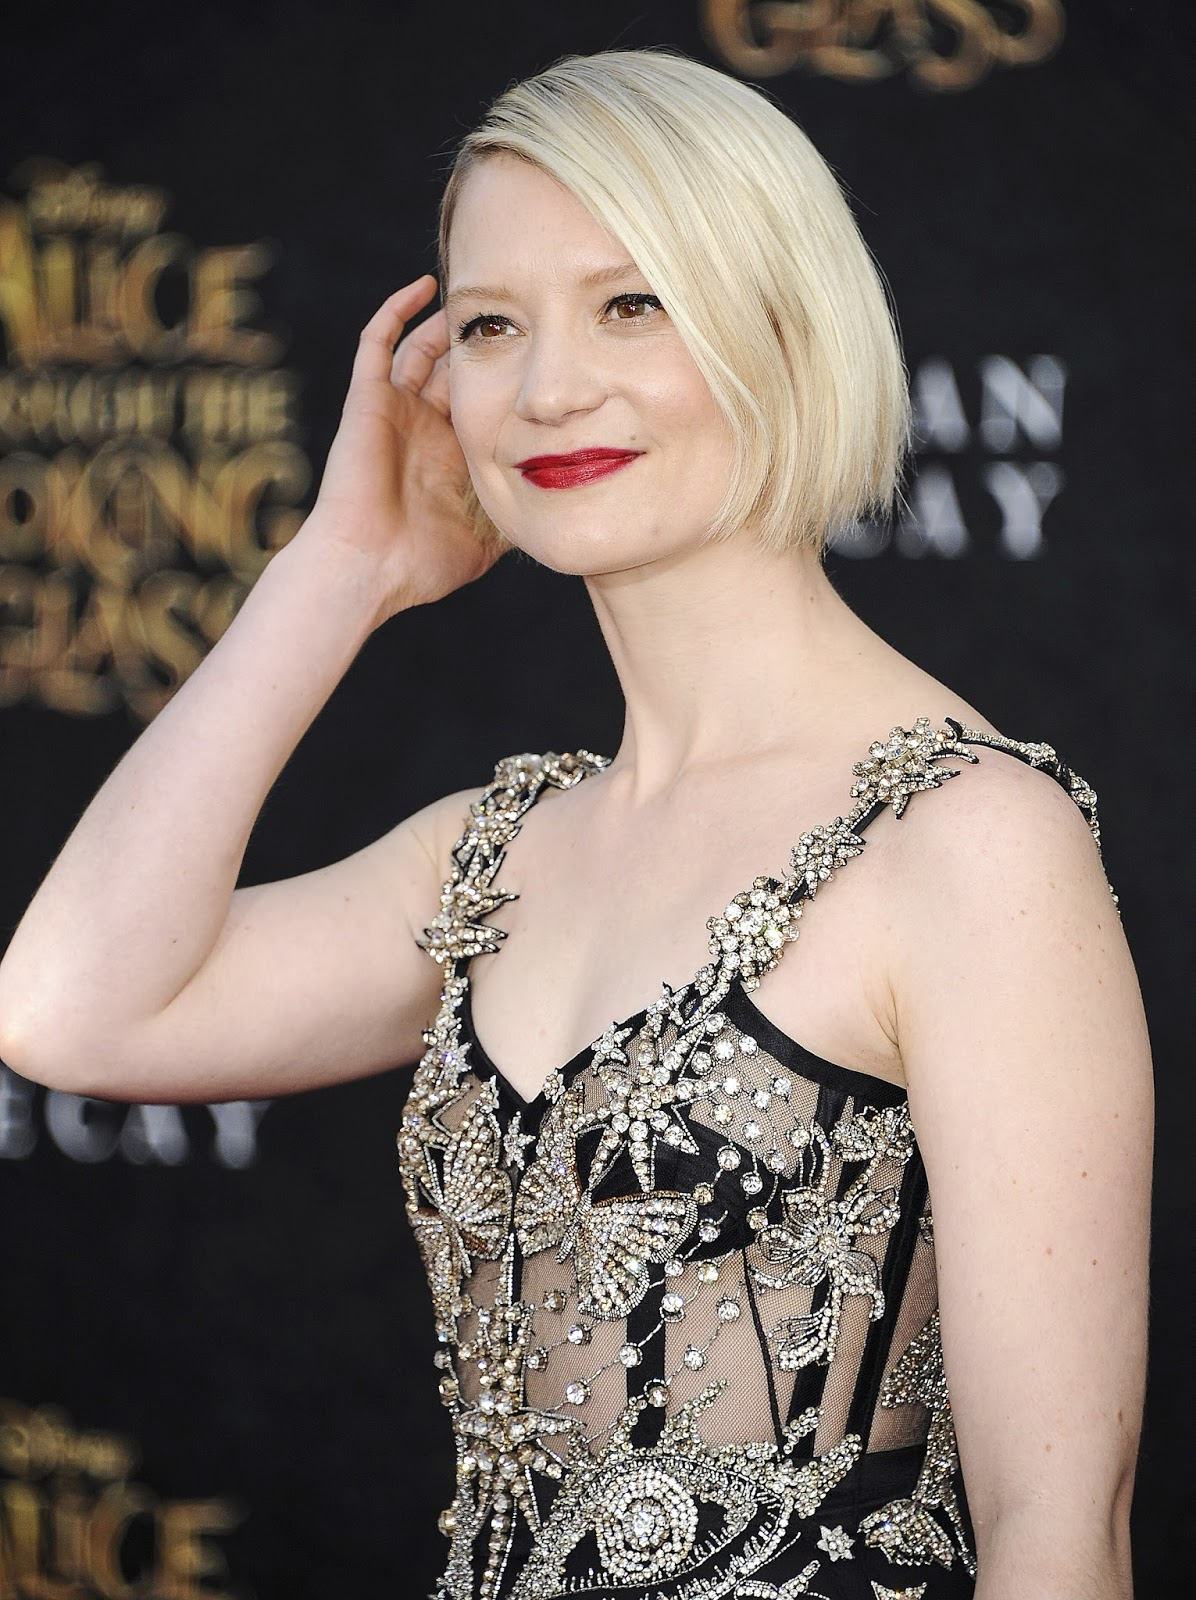 Arts Cross Stitch: Actress, @ Mia Wasikowska